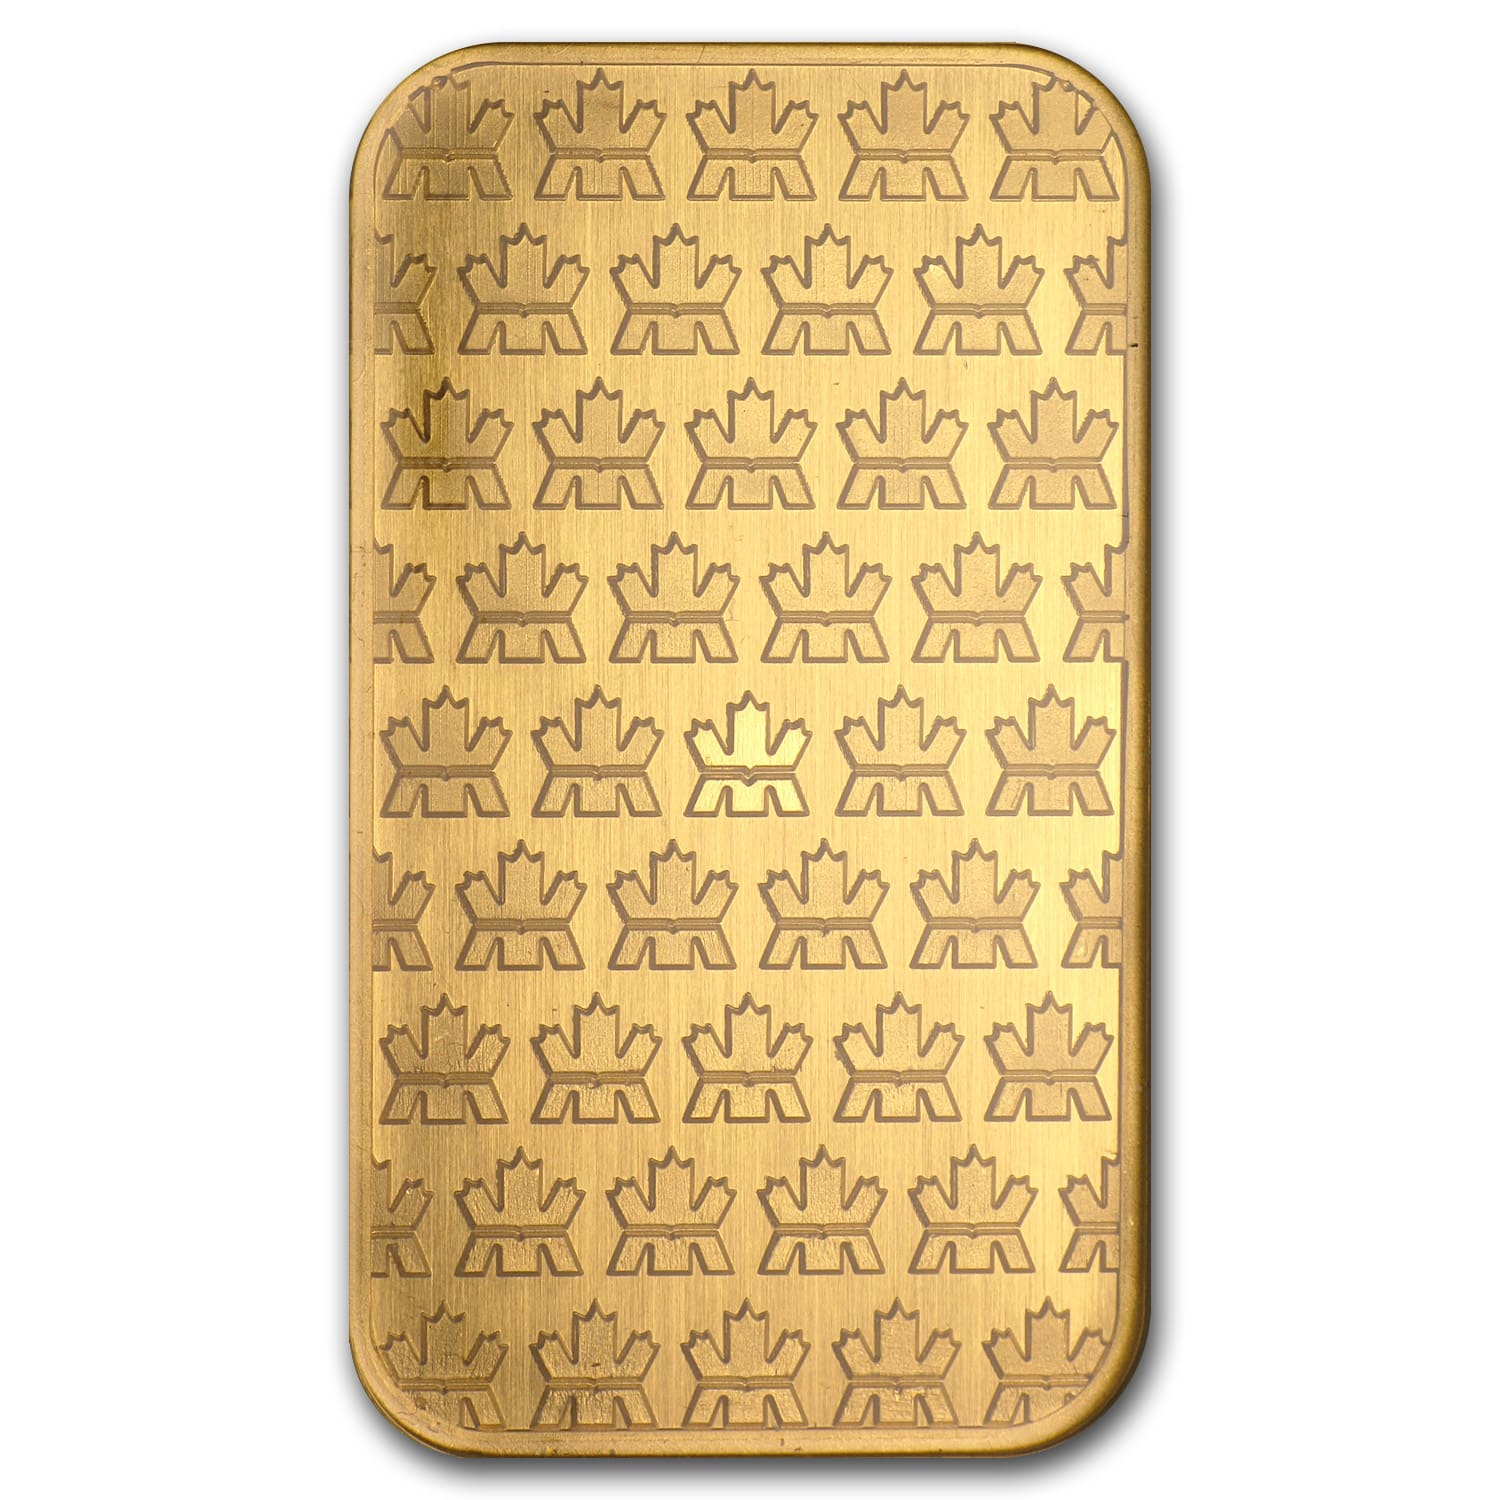 1 oz Gold Bar - Royal Canadian Mint (In Assay)